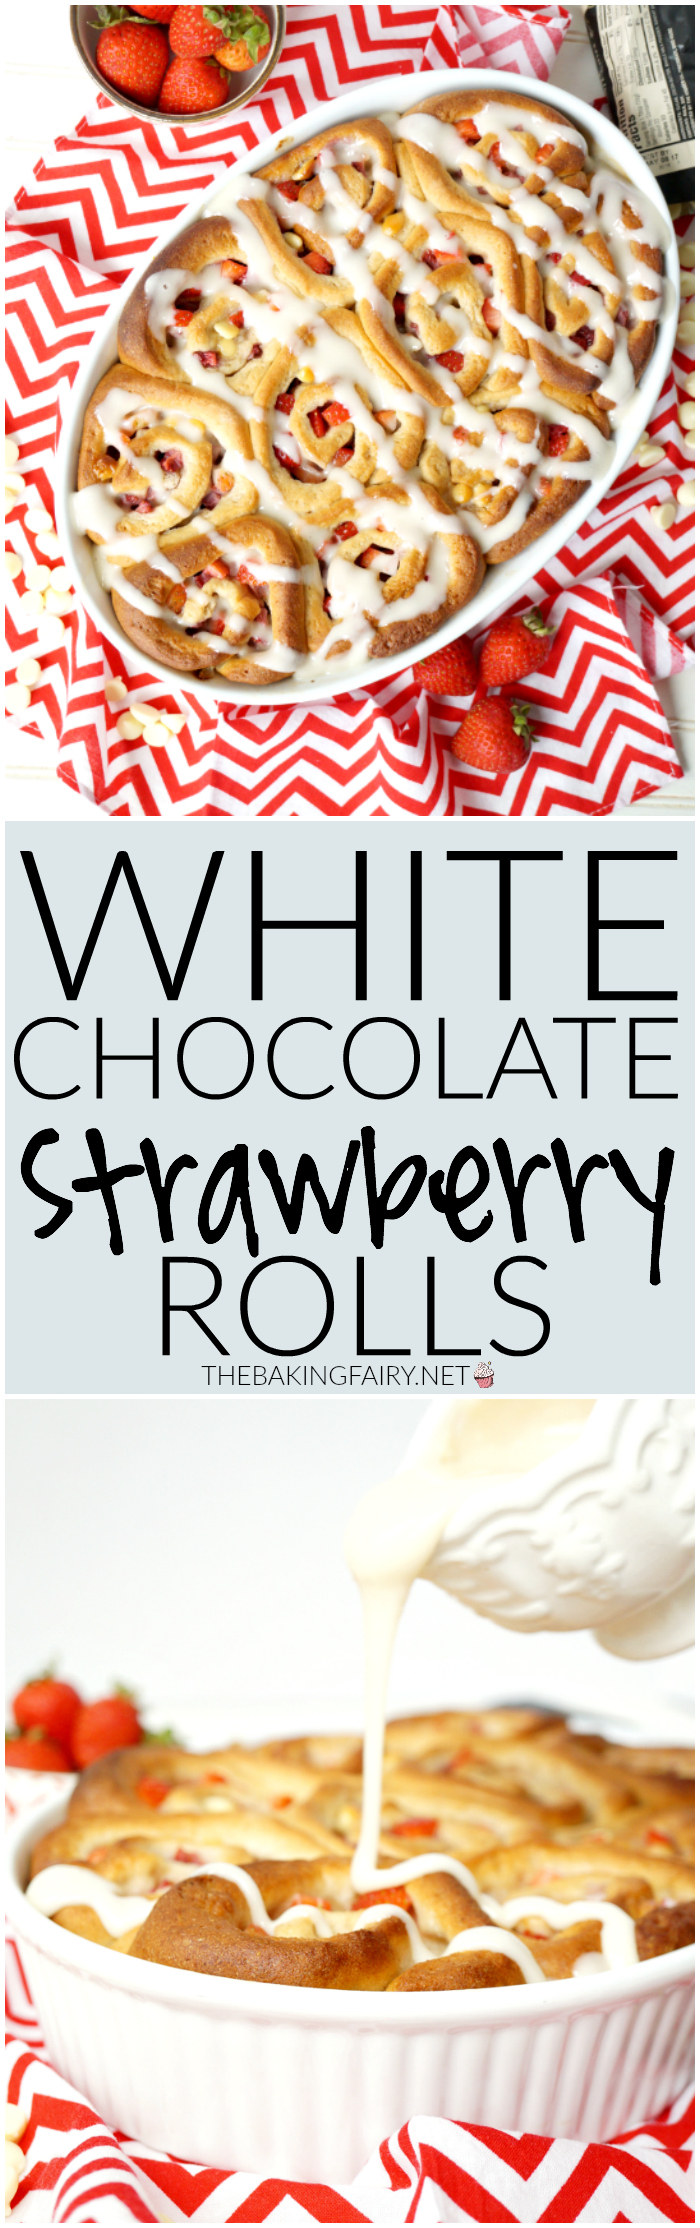 white chocolate strawberry rolls | The Baking Fairy